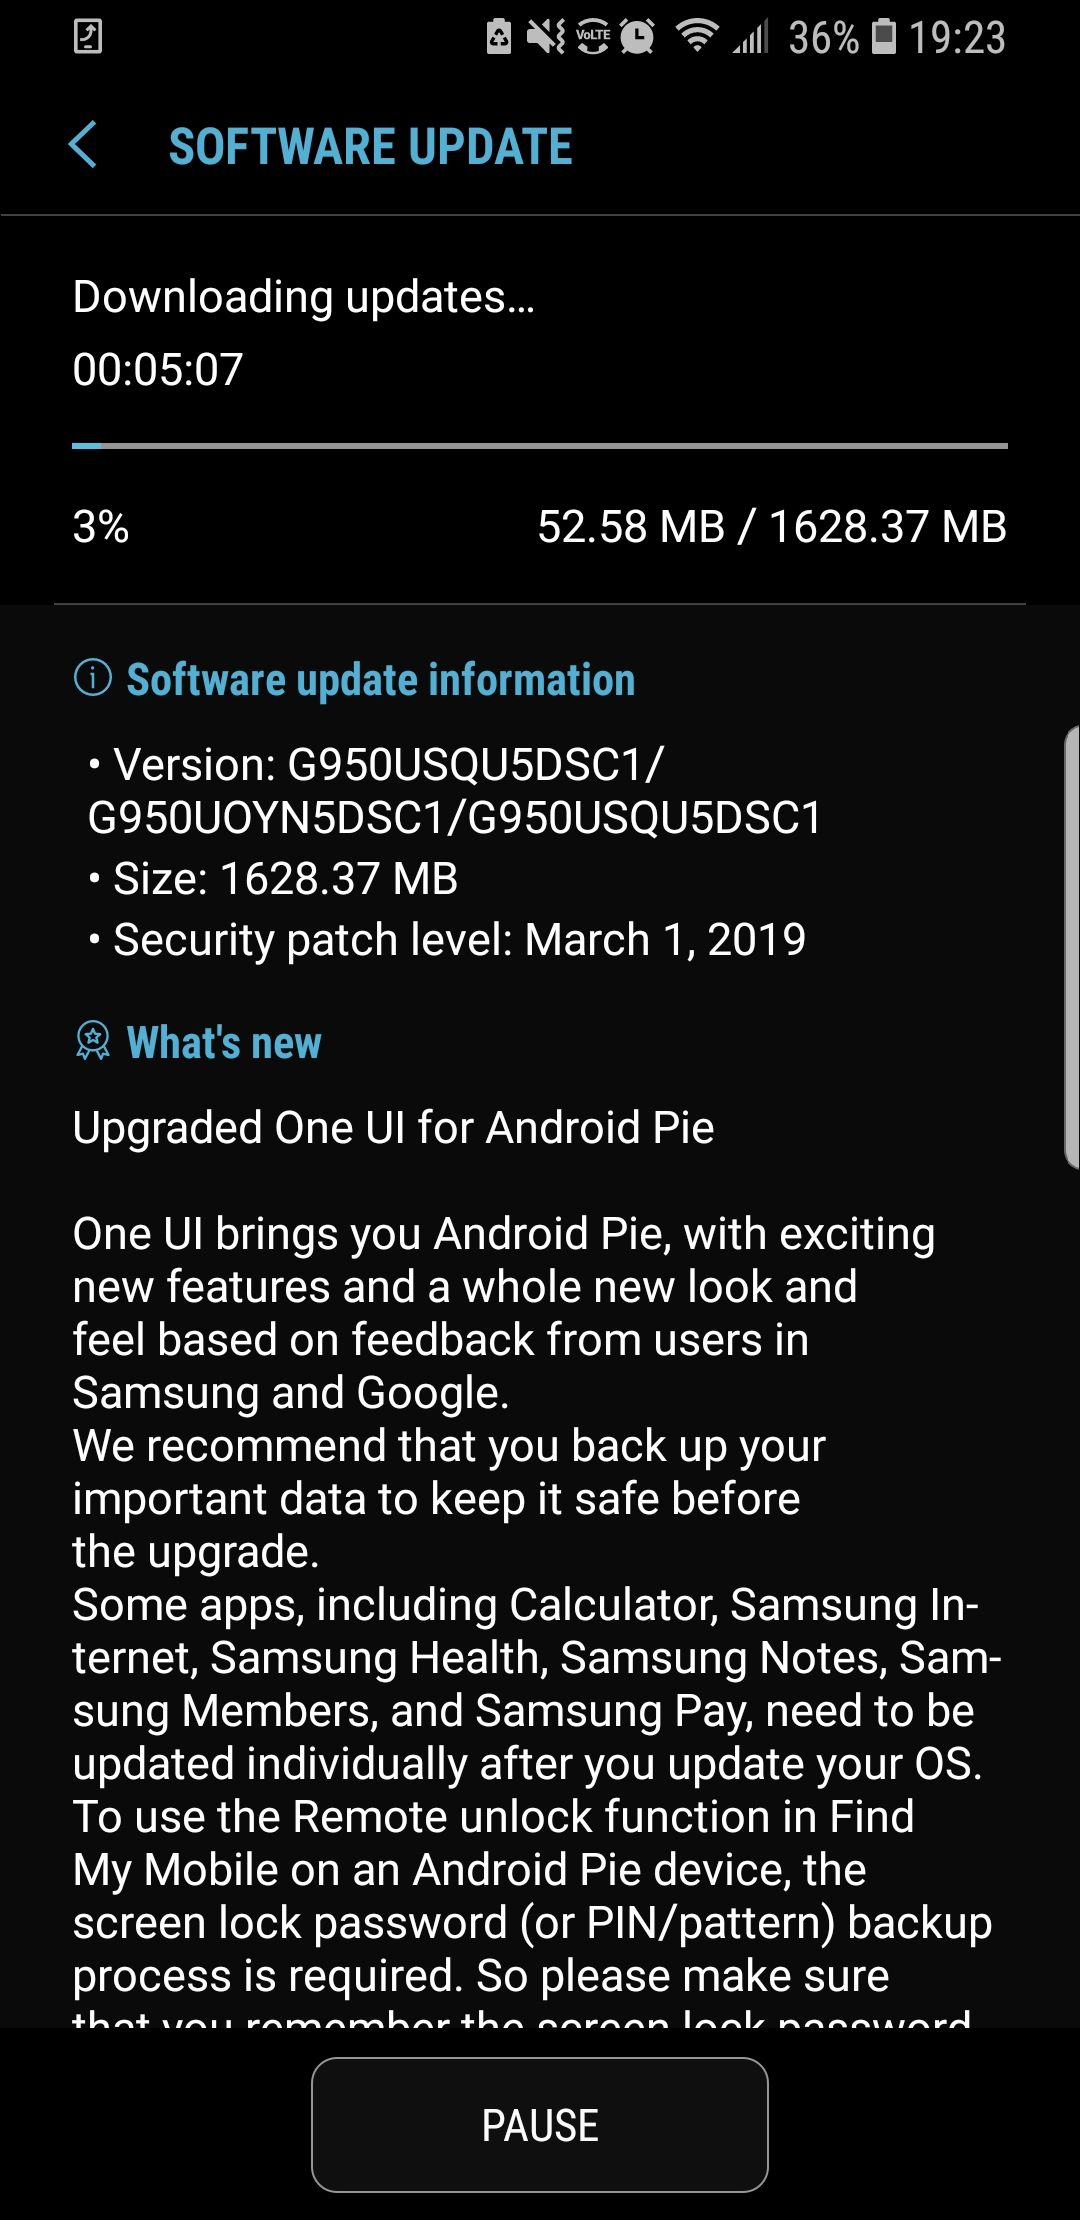 Update: Unlocked] Android 9 Pie rolling out to the Galaxy S8